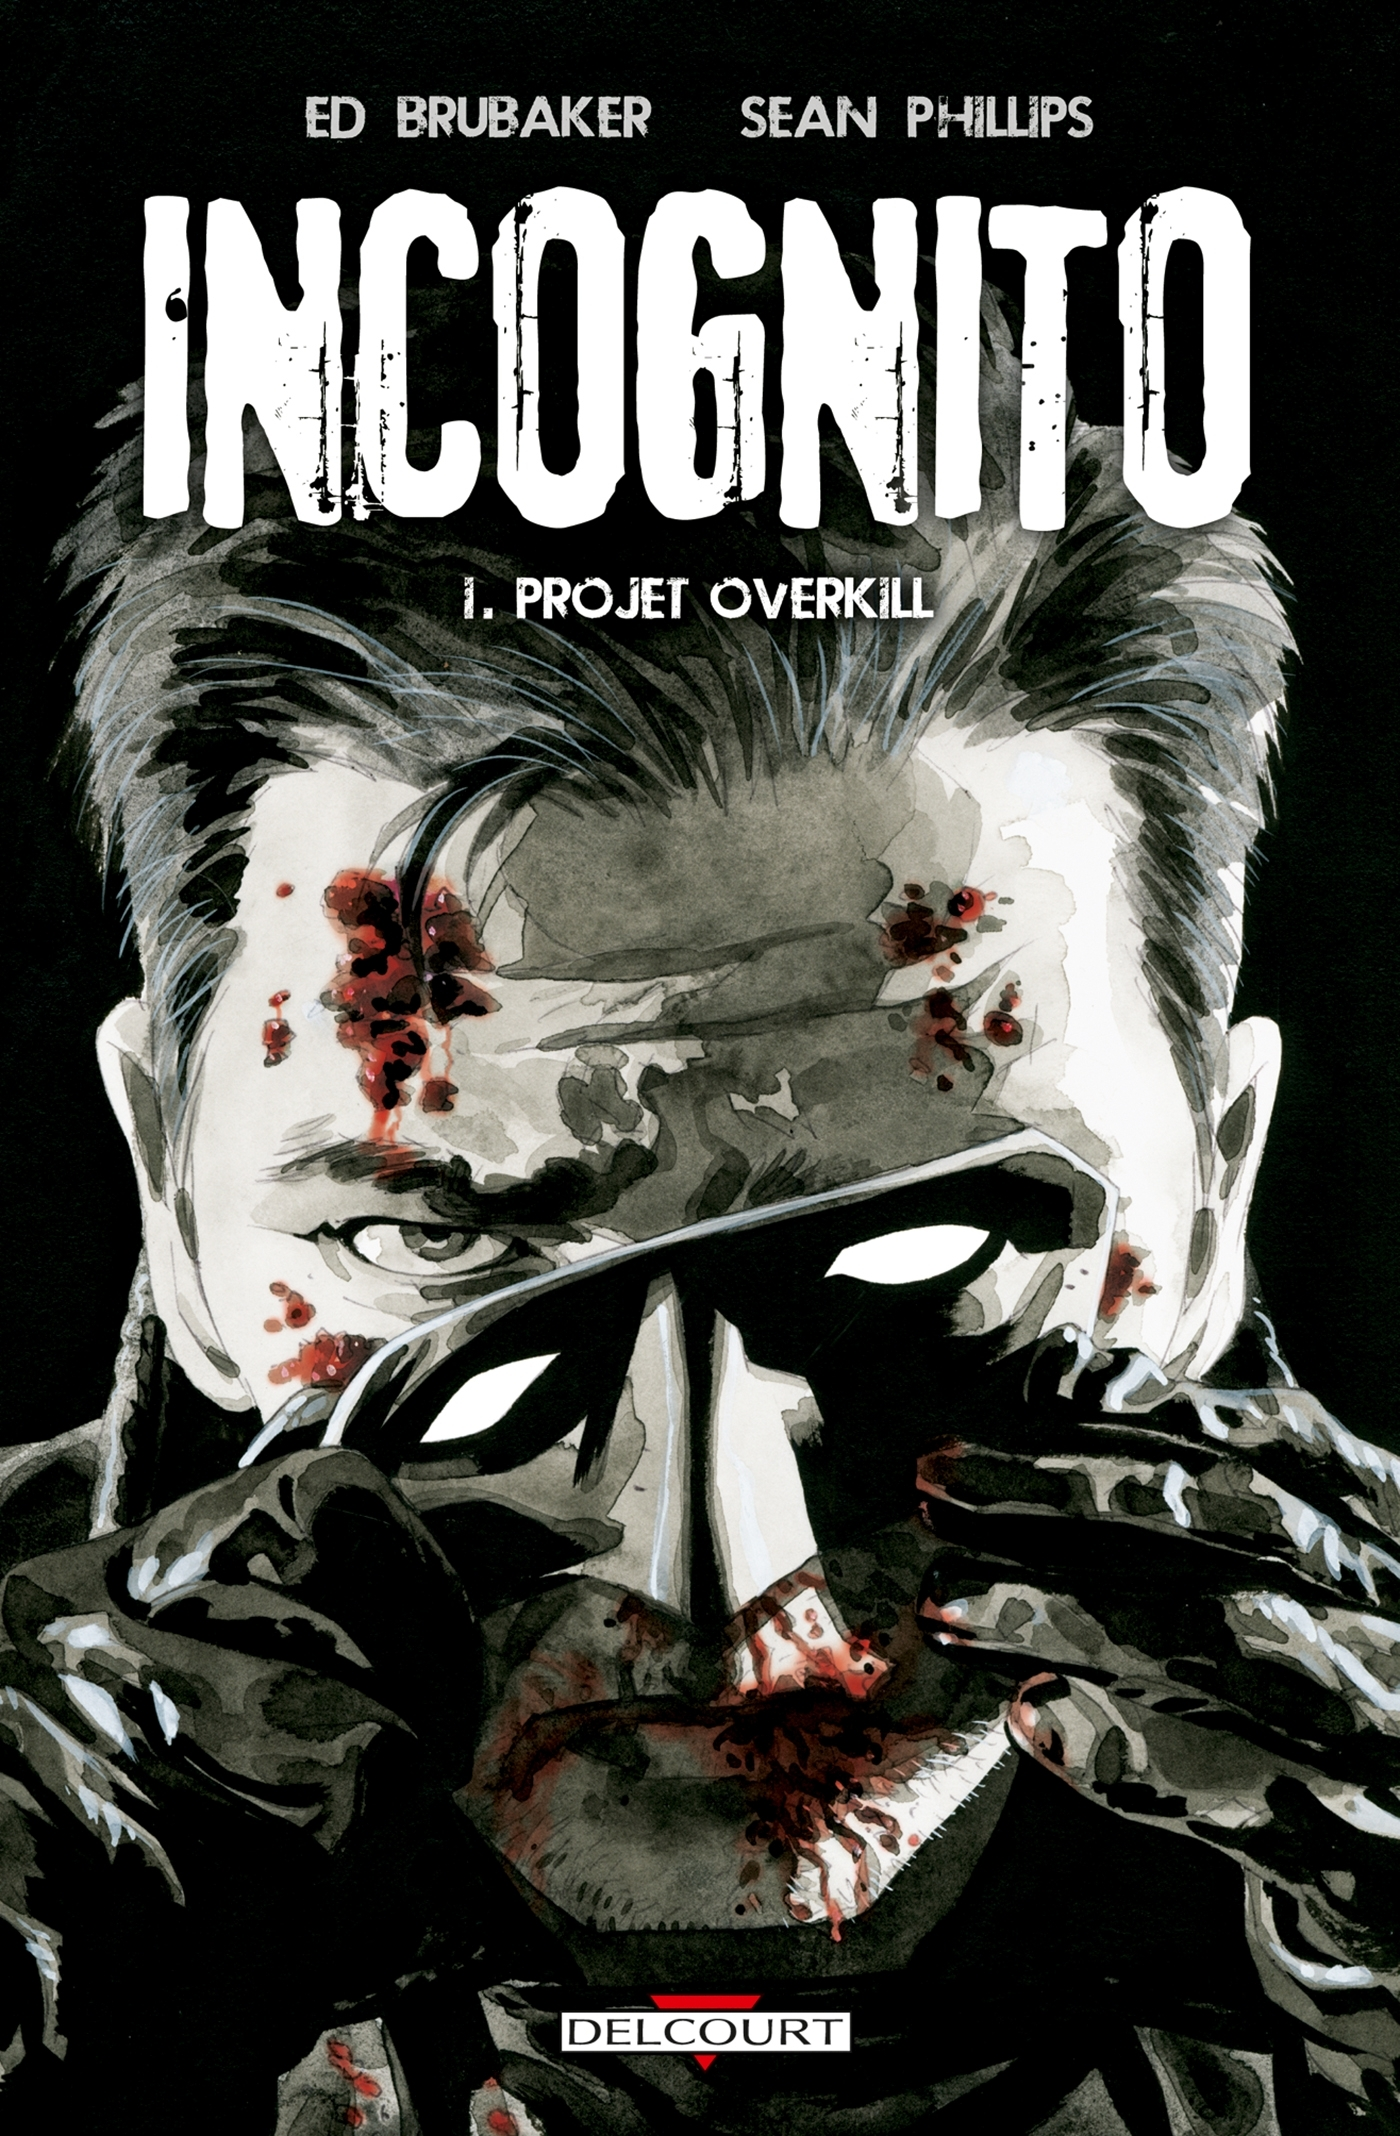 INCOGNITO T01 PROJET OVERKILL